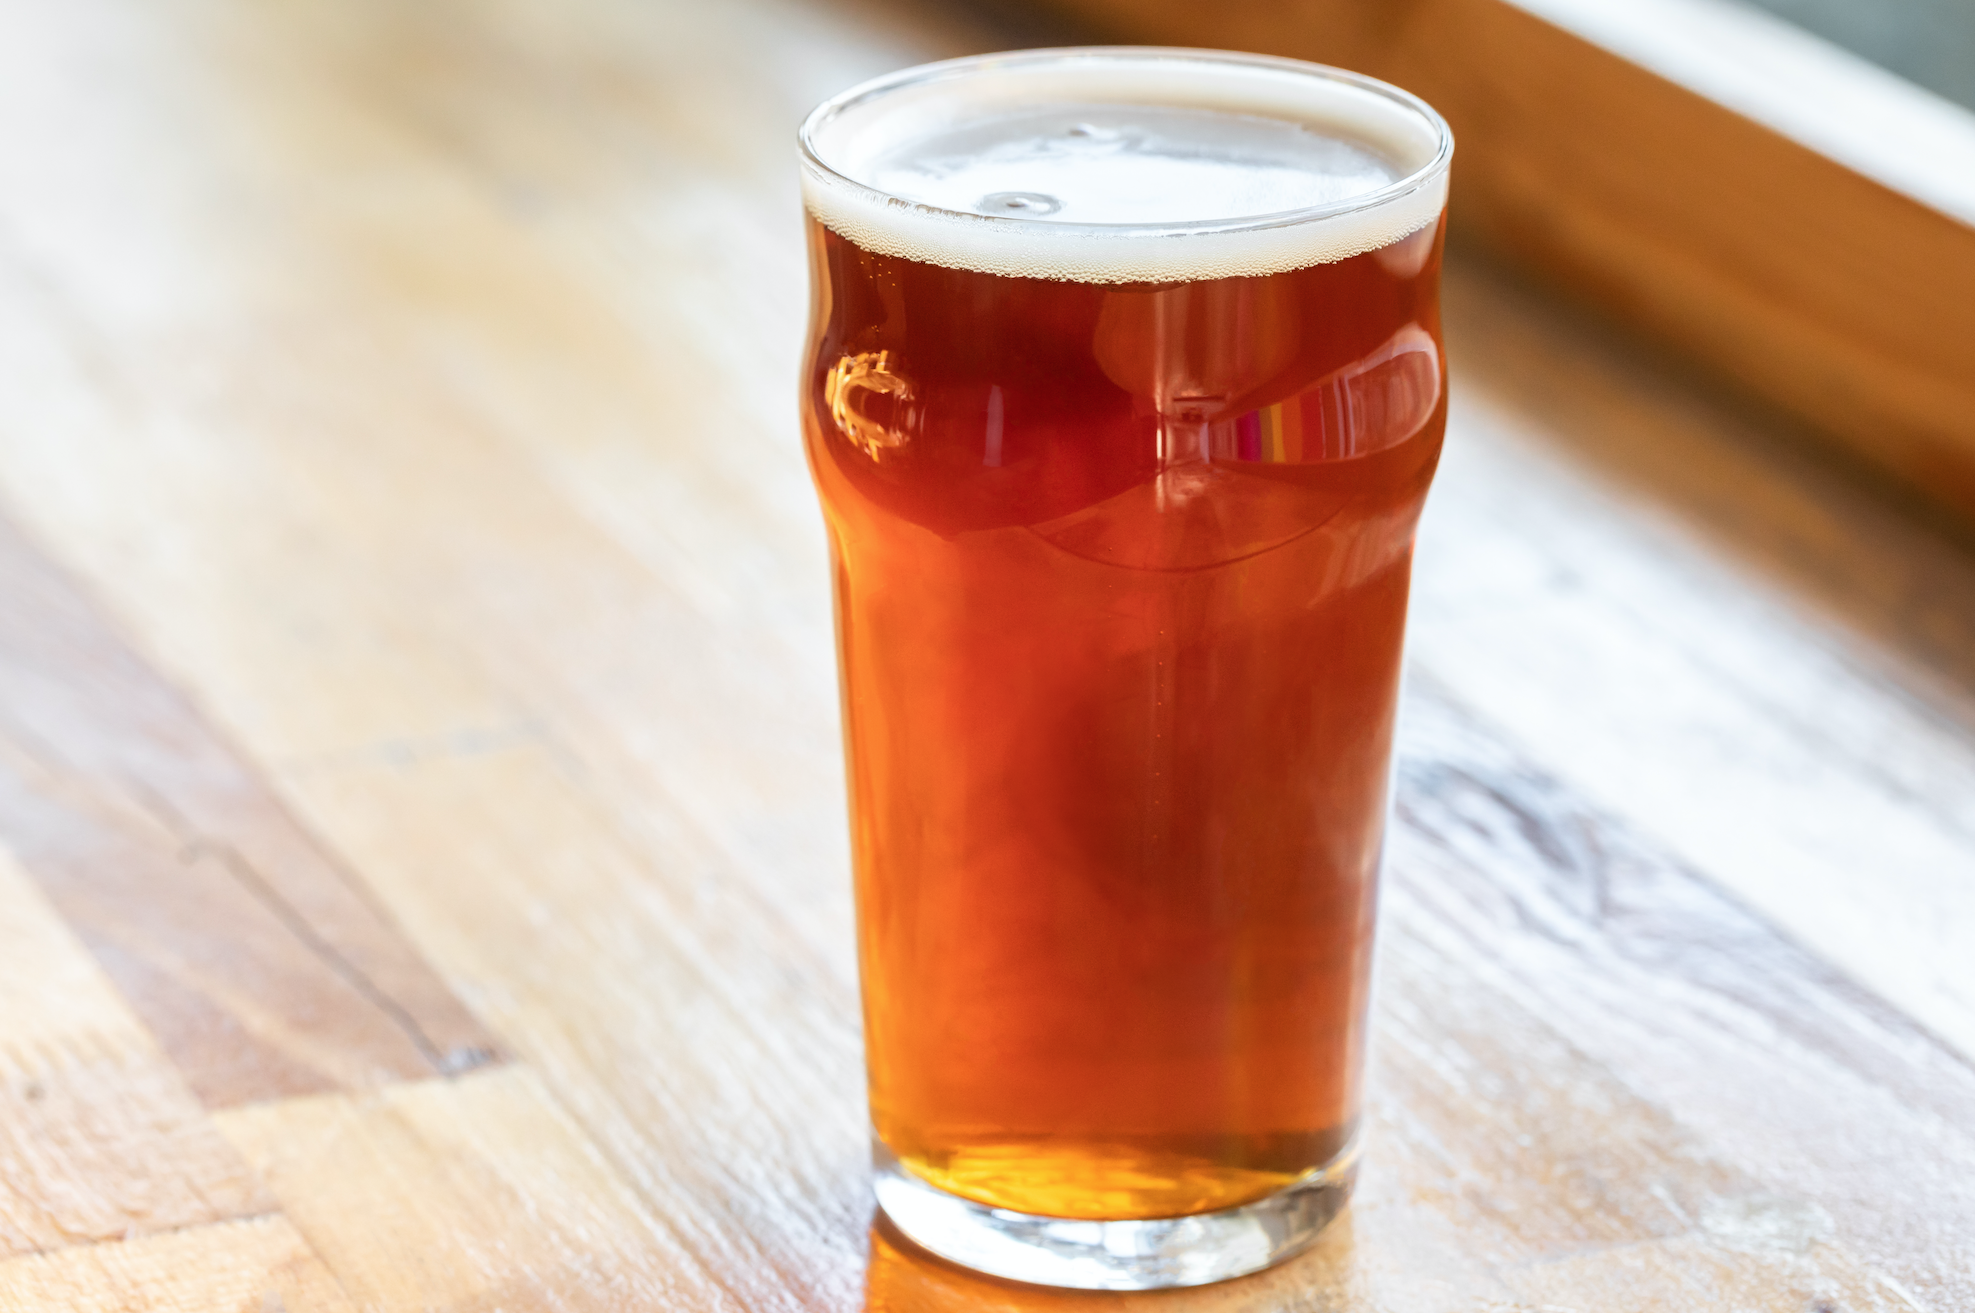 Pairings - IPA, Amber, Pale Ale, Lager, Oktoberfest, or Double IPA